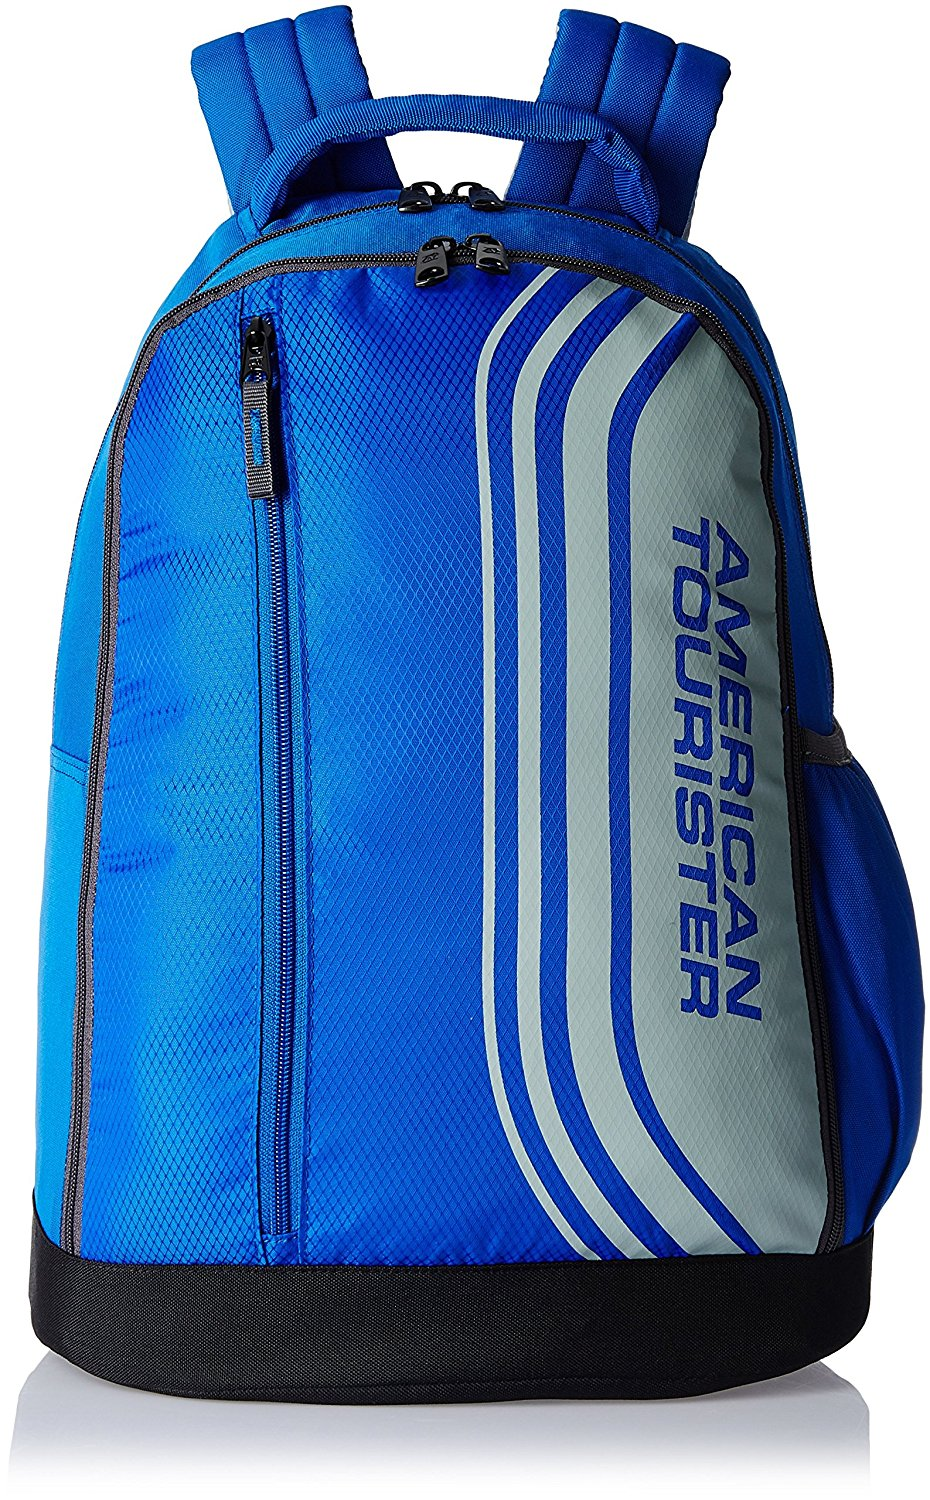 Minimum 50% Off Or More American Tourister Backpacks & More discount offer